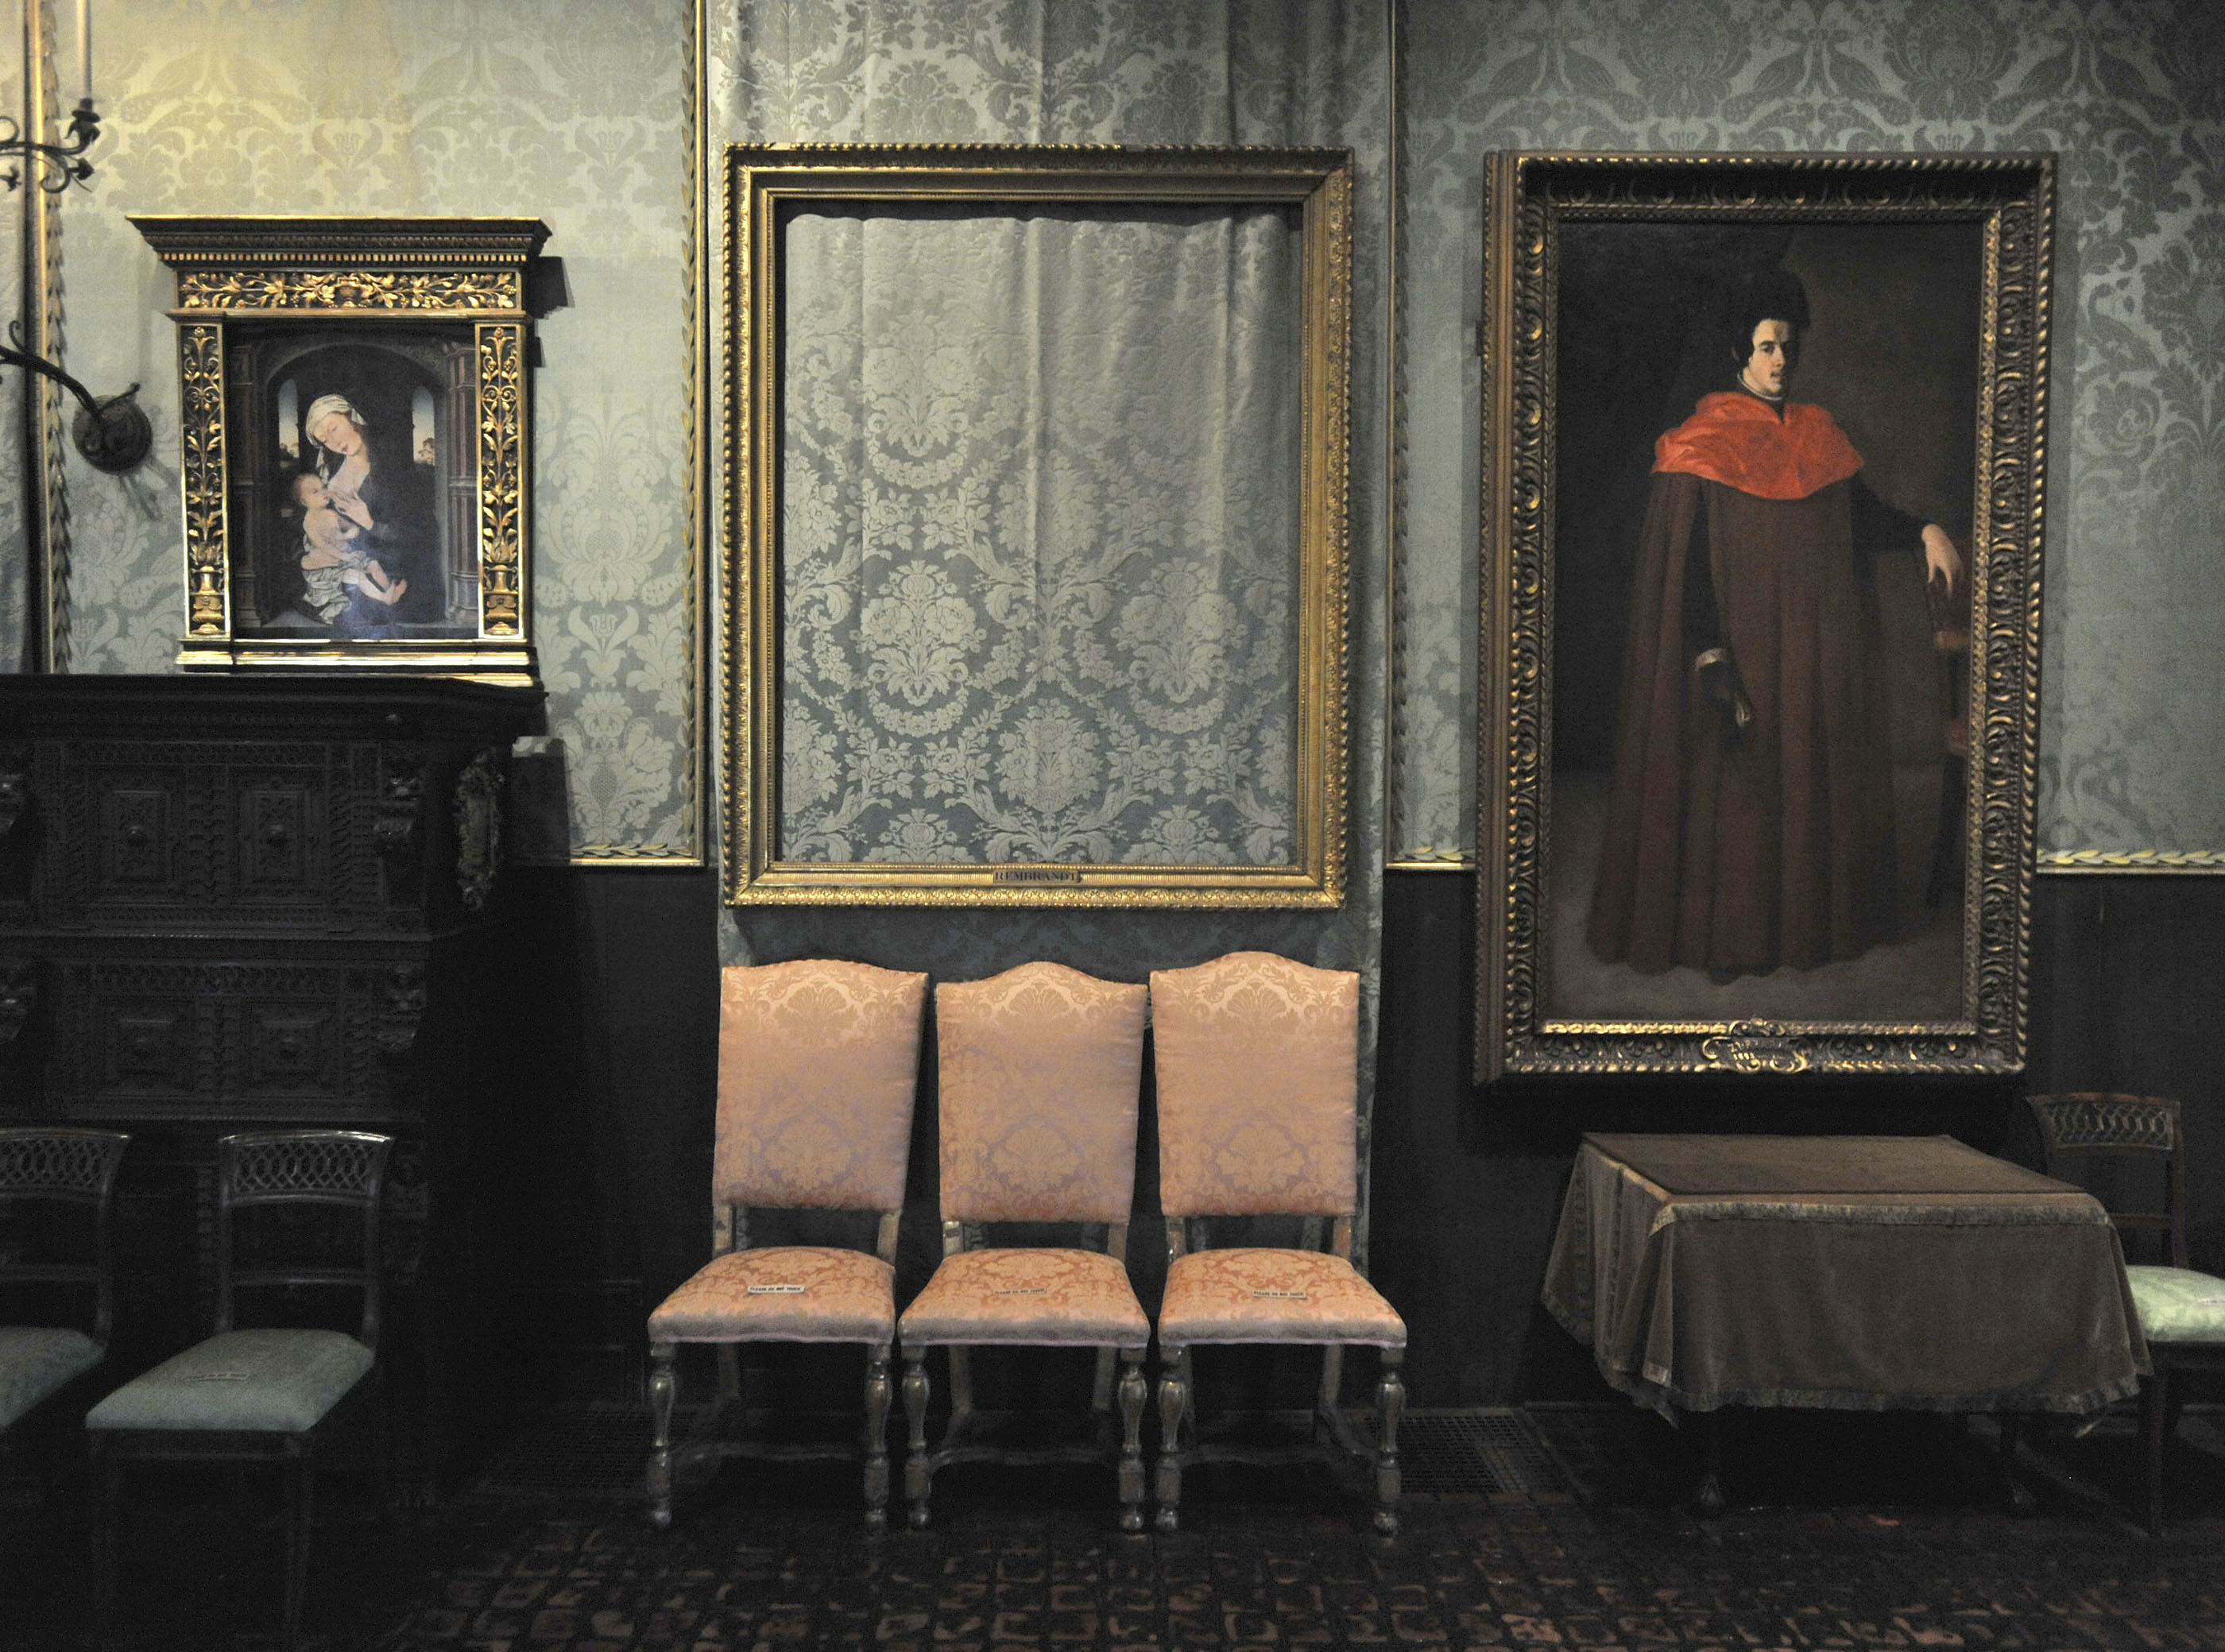 Hot Tip On Old Heist Could Be Worth $10 Million, Gardner Museum Says